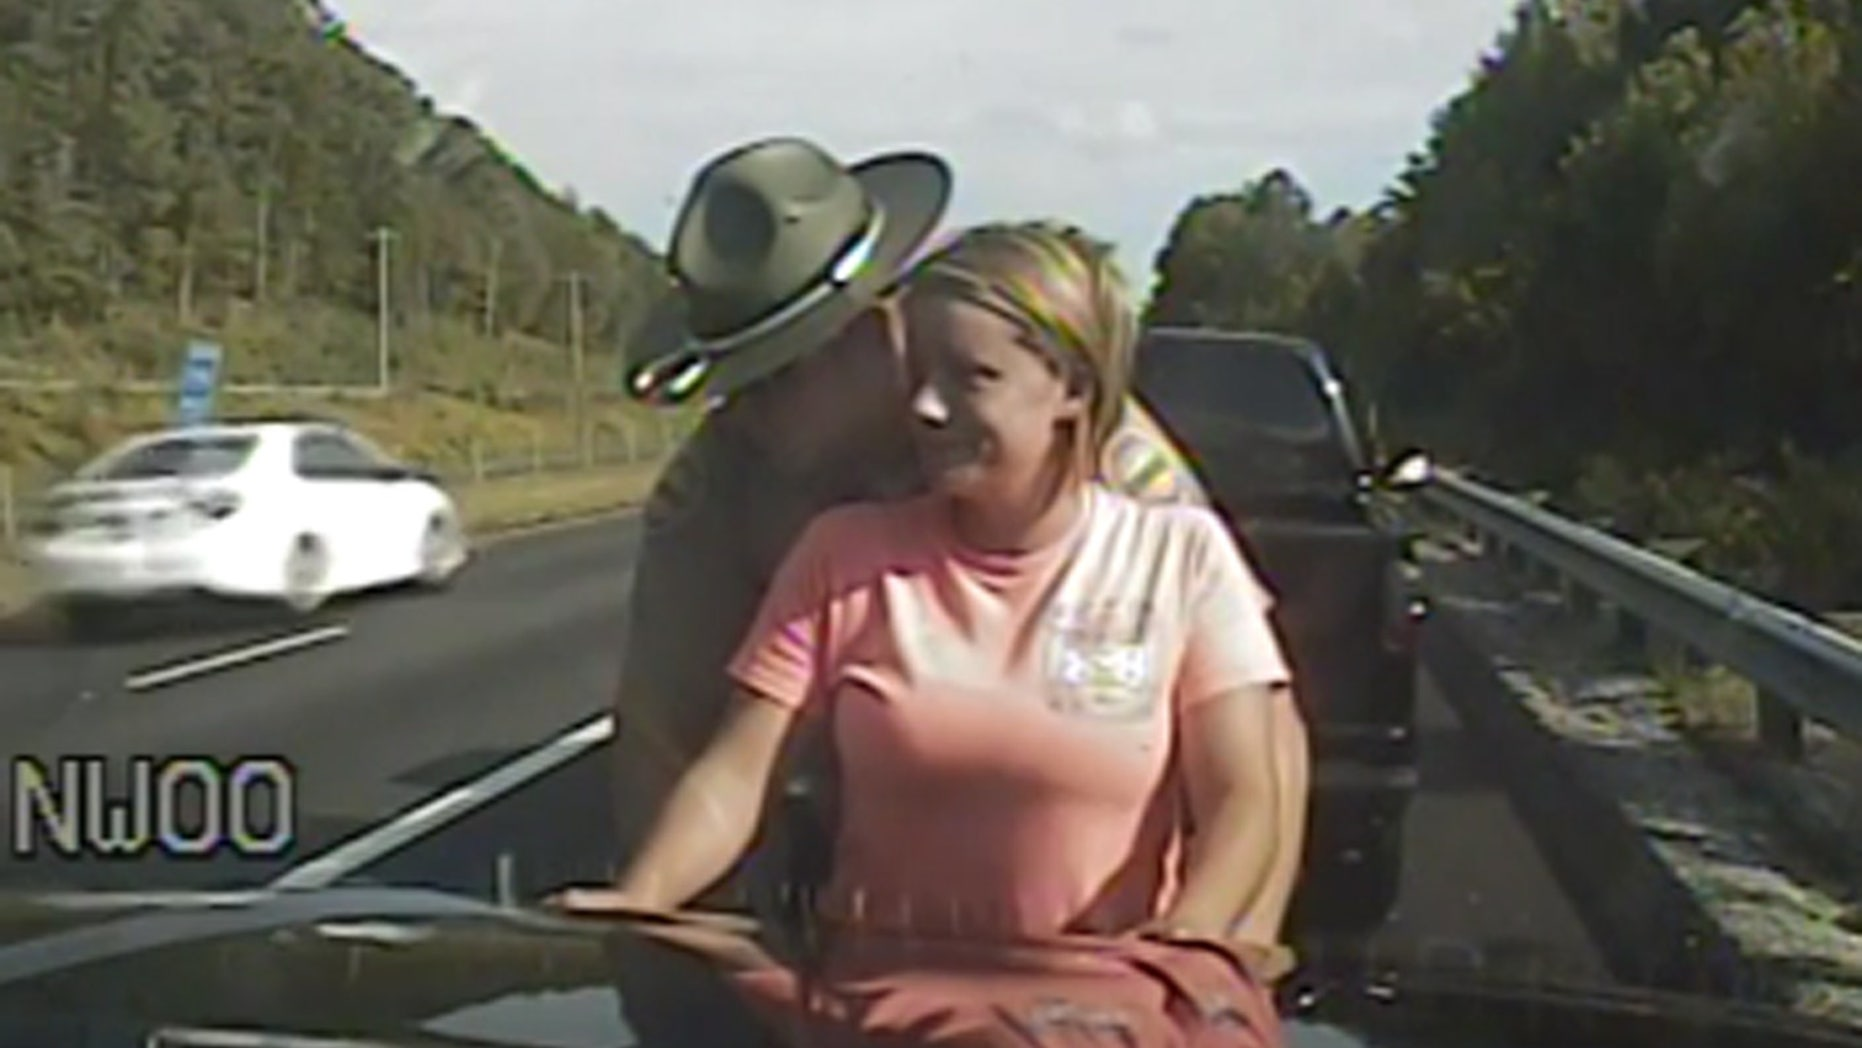 A Tennessee Highway Patrol trooper is accused of groping a woman during a traffic stop over a seat belt, reports say.